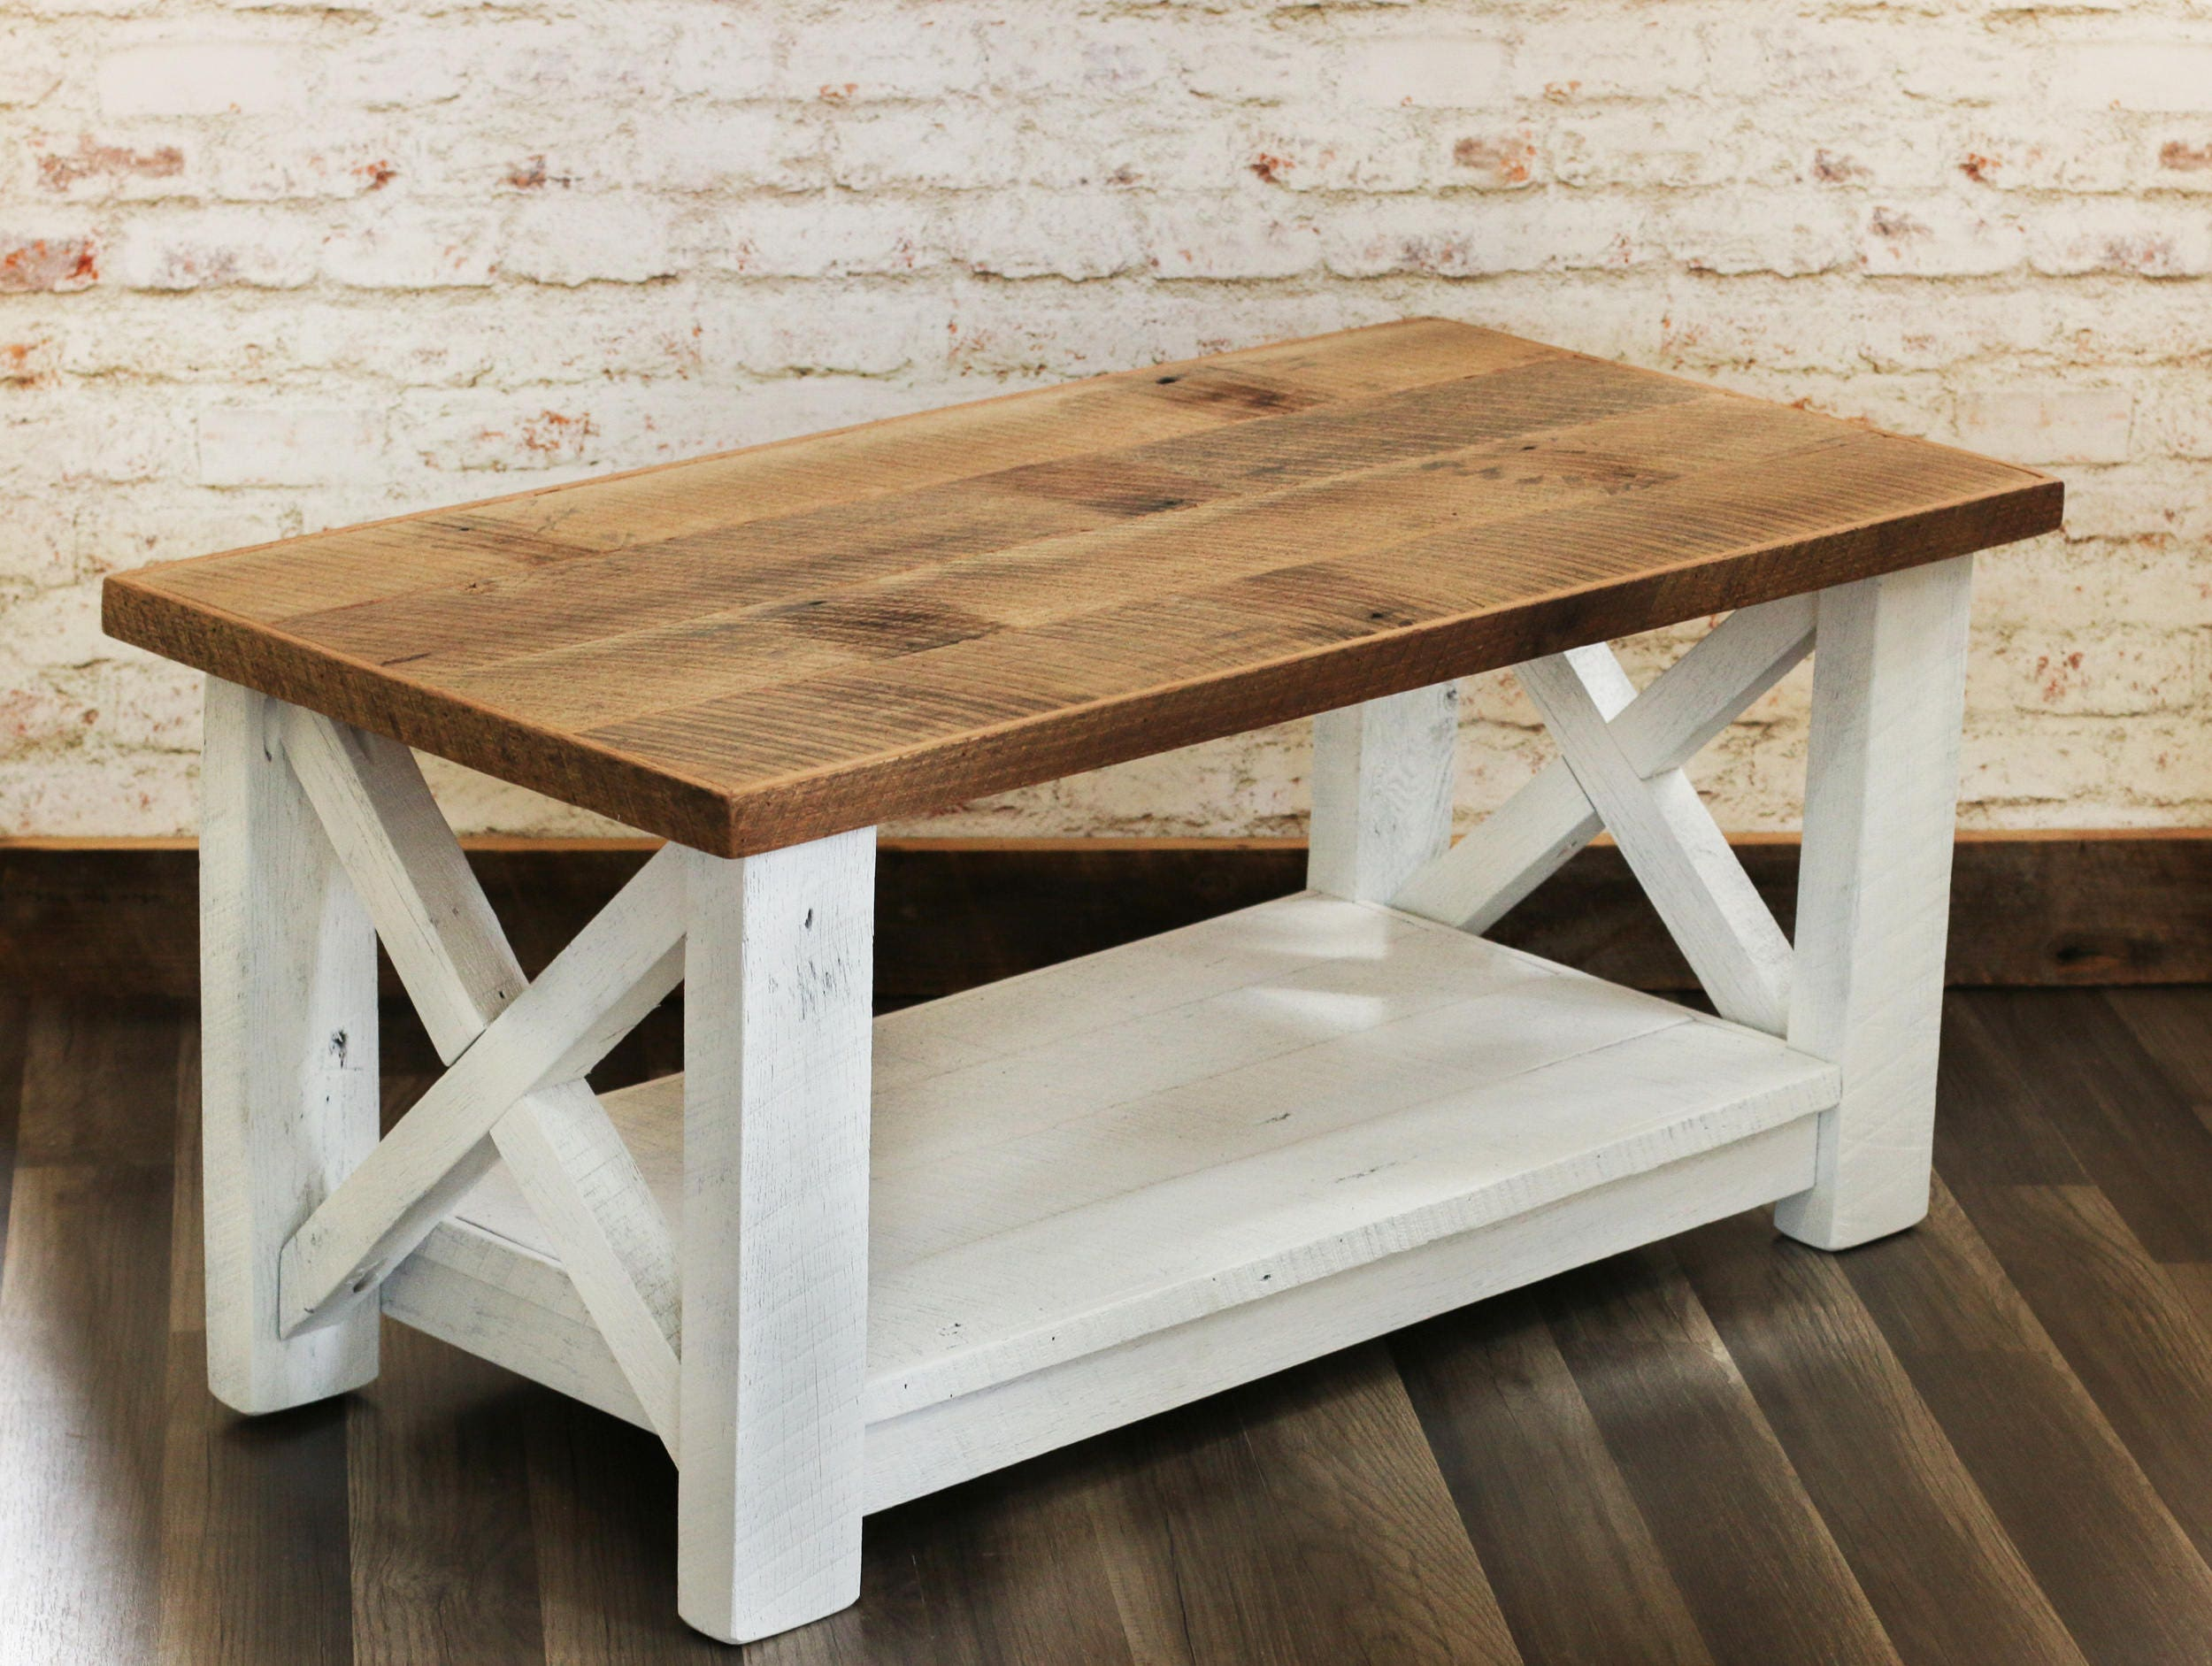 Farmhouse Coffee Table Made from Reclaimed Wood X Detail